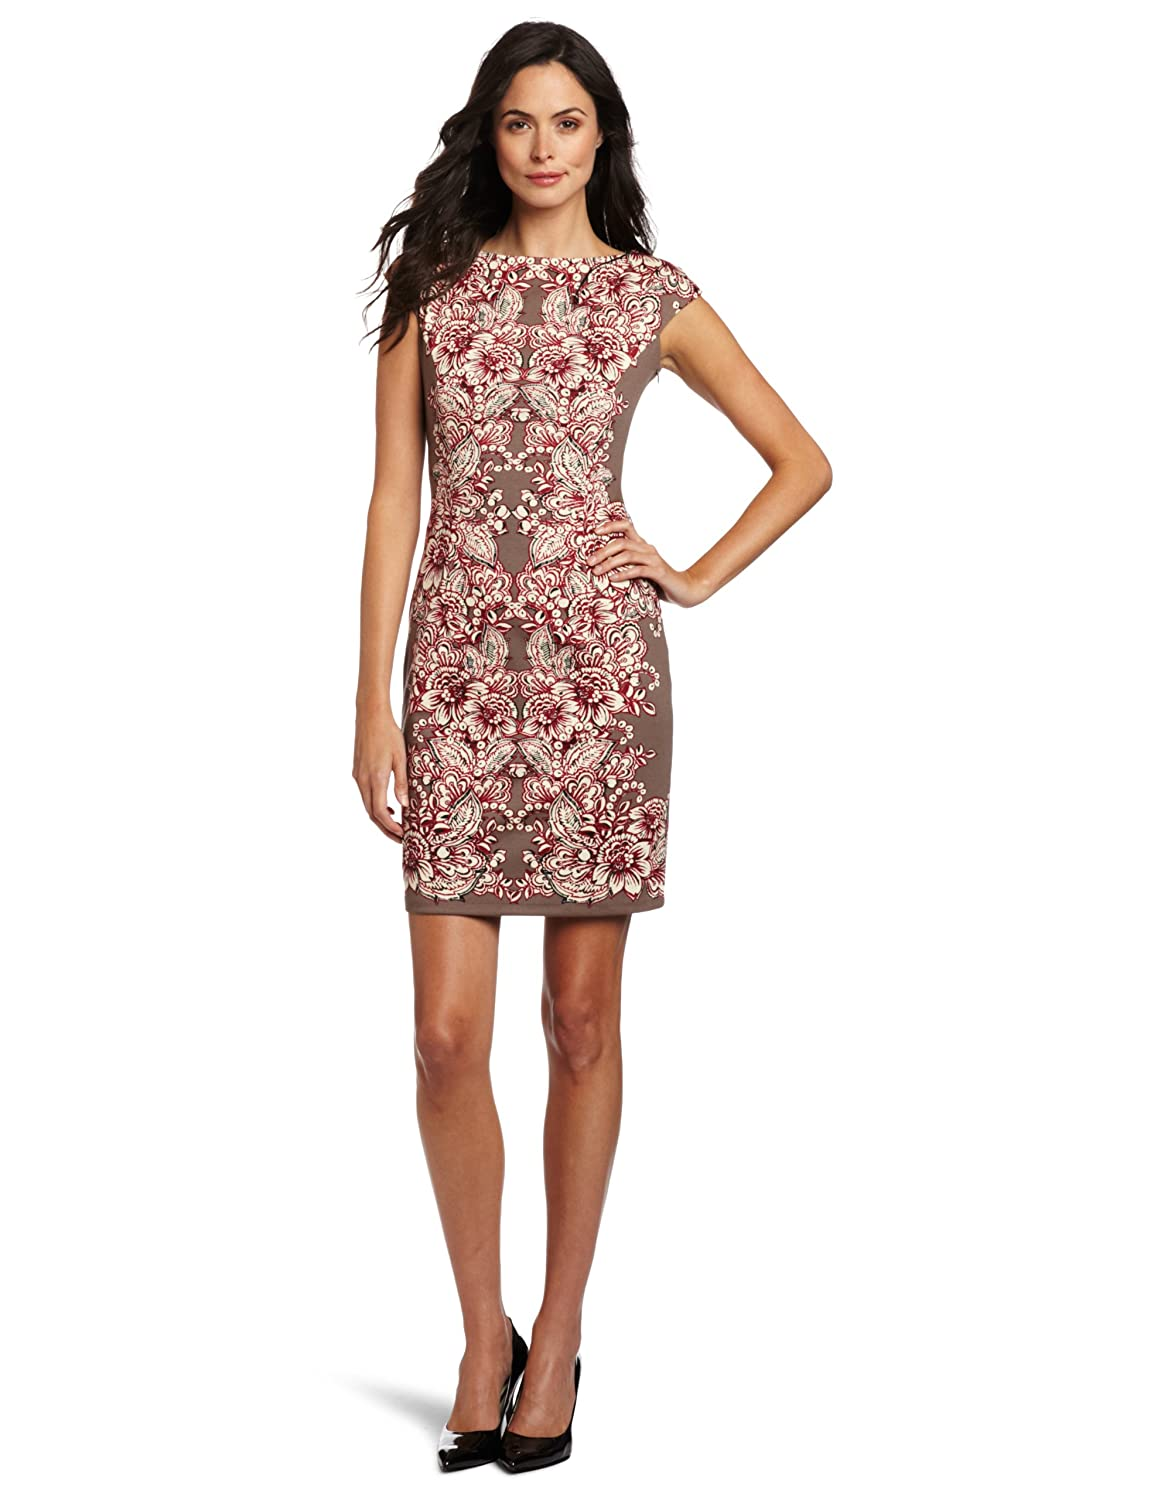 Ad Latest Fashion, + Styles, High-end, Free Shipping & Return, Shop Now! Start Your Holiday Shopping Off Right with Up To $80 Off Thru 11/ Sale Ends maintainseveral.ml: Lace Dresses, Chiffon Dreses, Silk Dresses, White Dresses, Black Dresses.